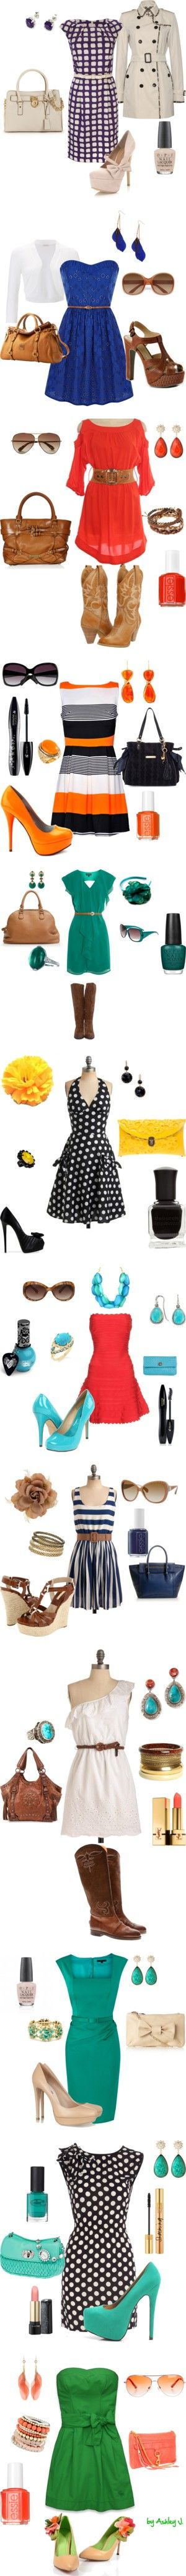 : Cute Dresses Outfits, Colors Combos, Teal Dresses, Cute Outfits, Colors Combinations, 27 Dresses, Outfits Ideas, Orange Outfits, Dressy Outfits